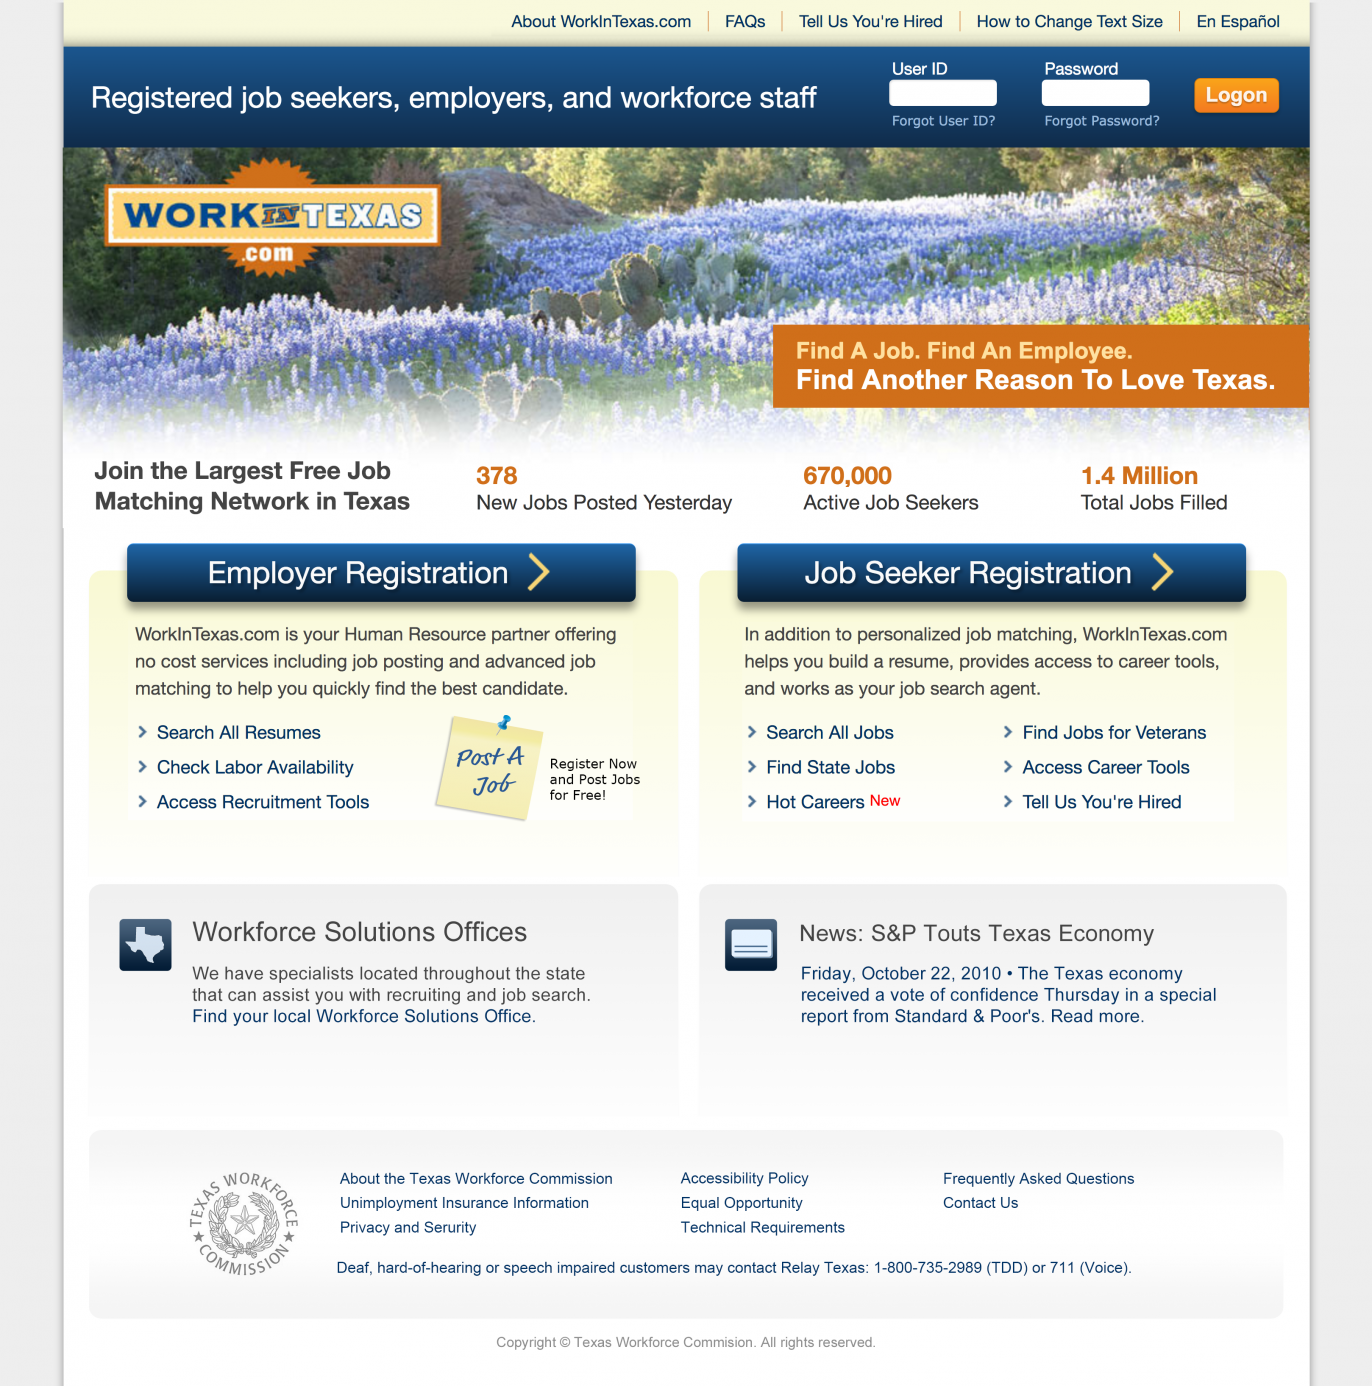 image showing homepage design